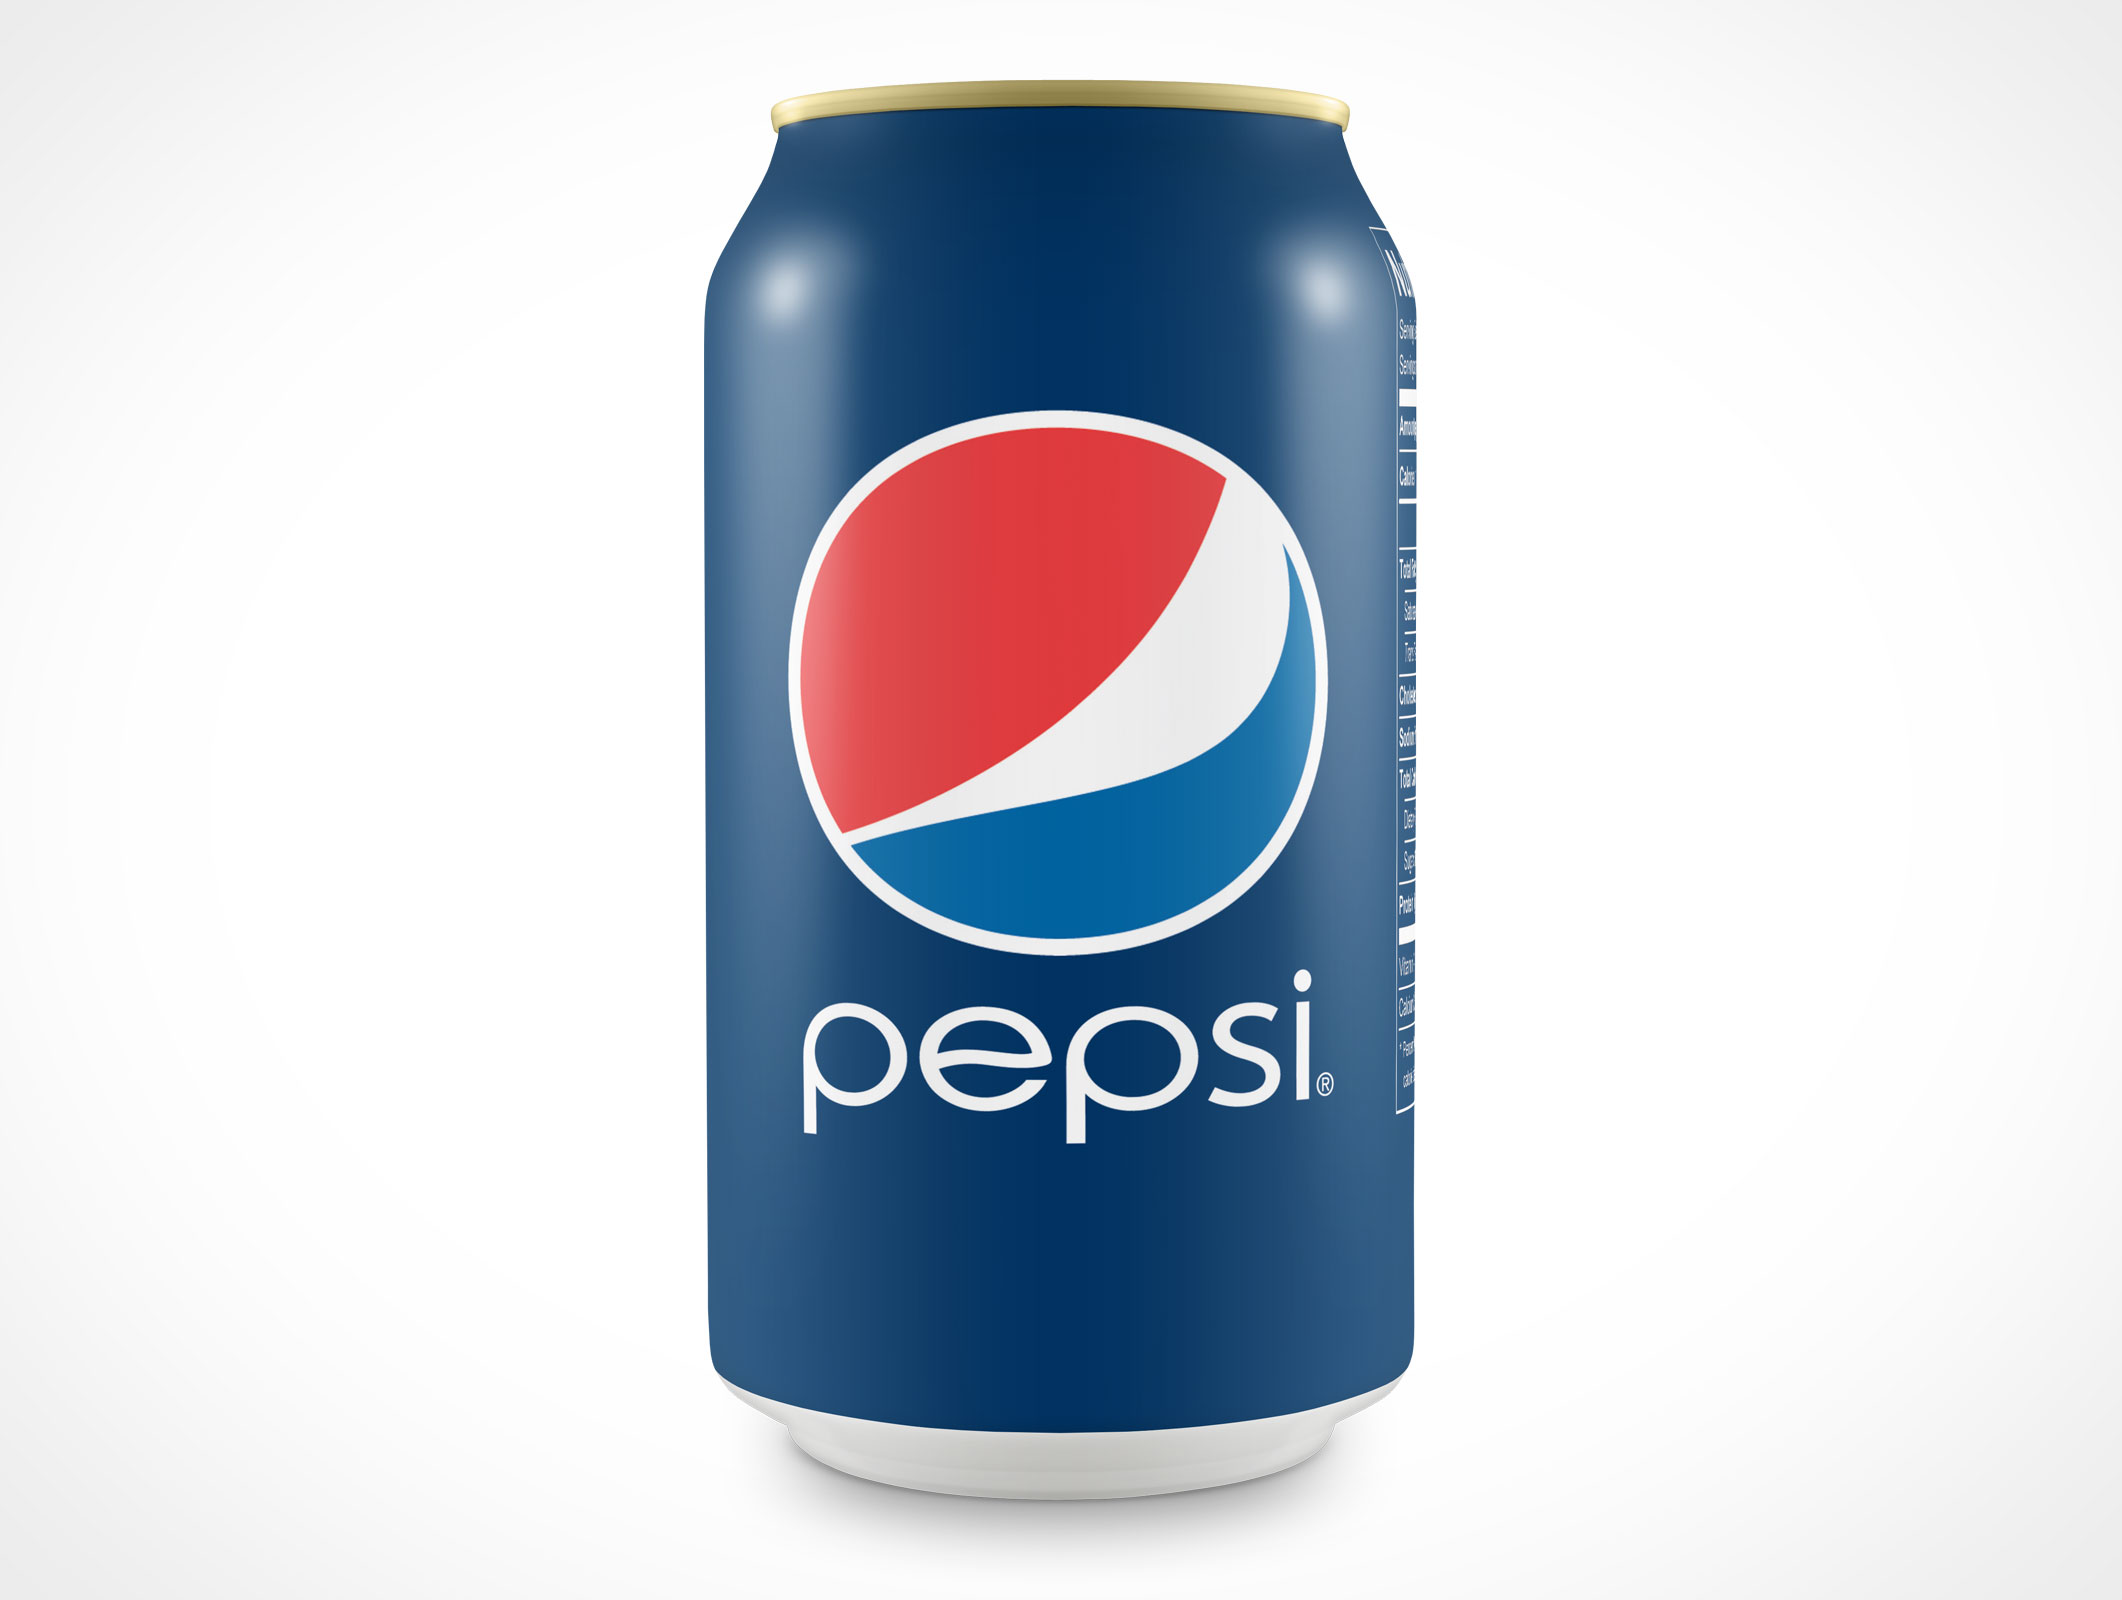 Pictures Of Soda Cans Free Cliparts That You Can Download To You